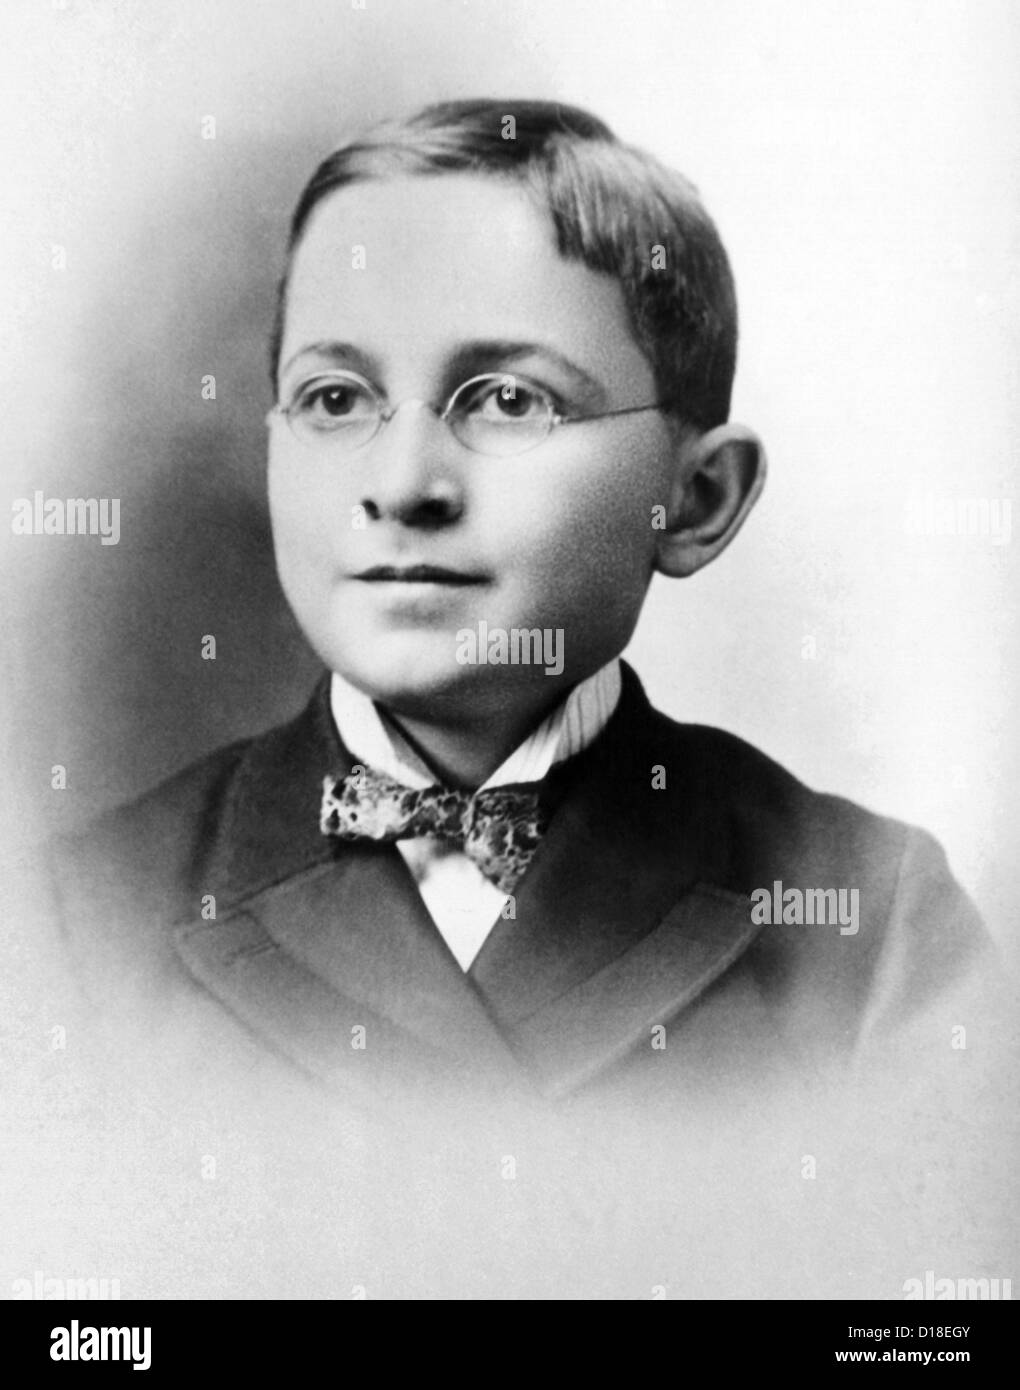 Harry Truman comme un écolier. Ca. 1892. __CSU (ALPHA 194) Archives CSU/Everett Collection Photo Stock